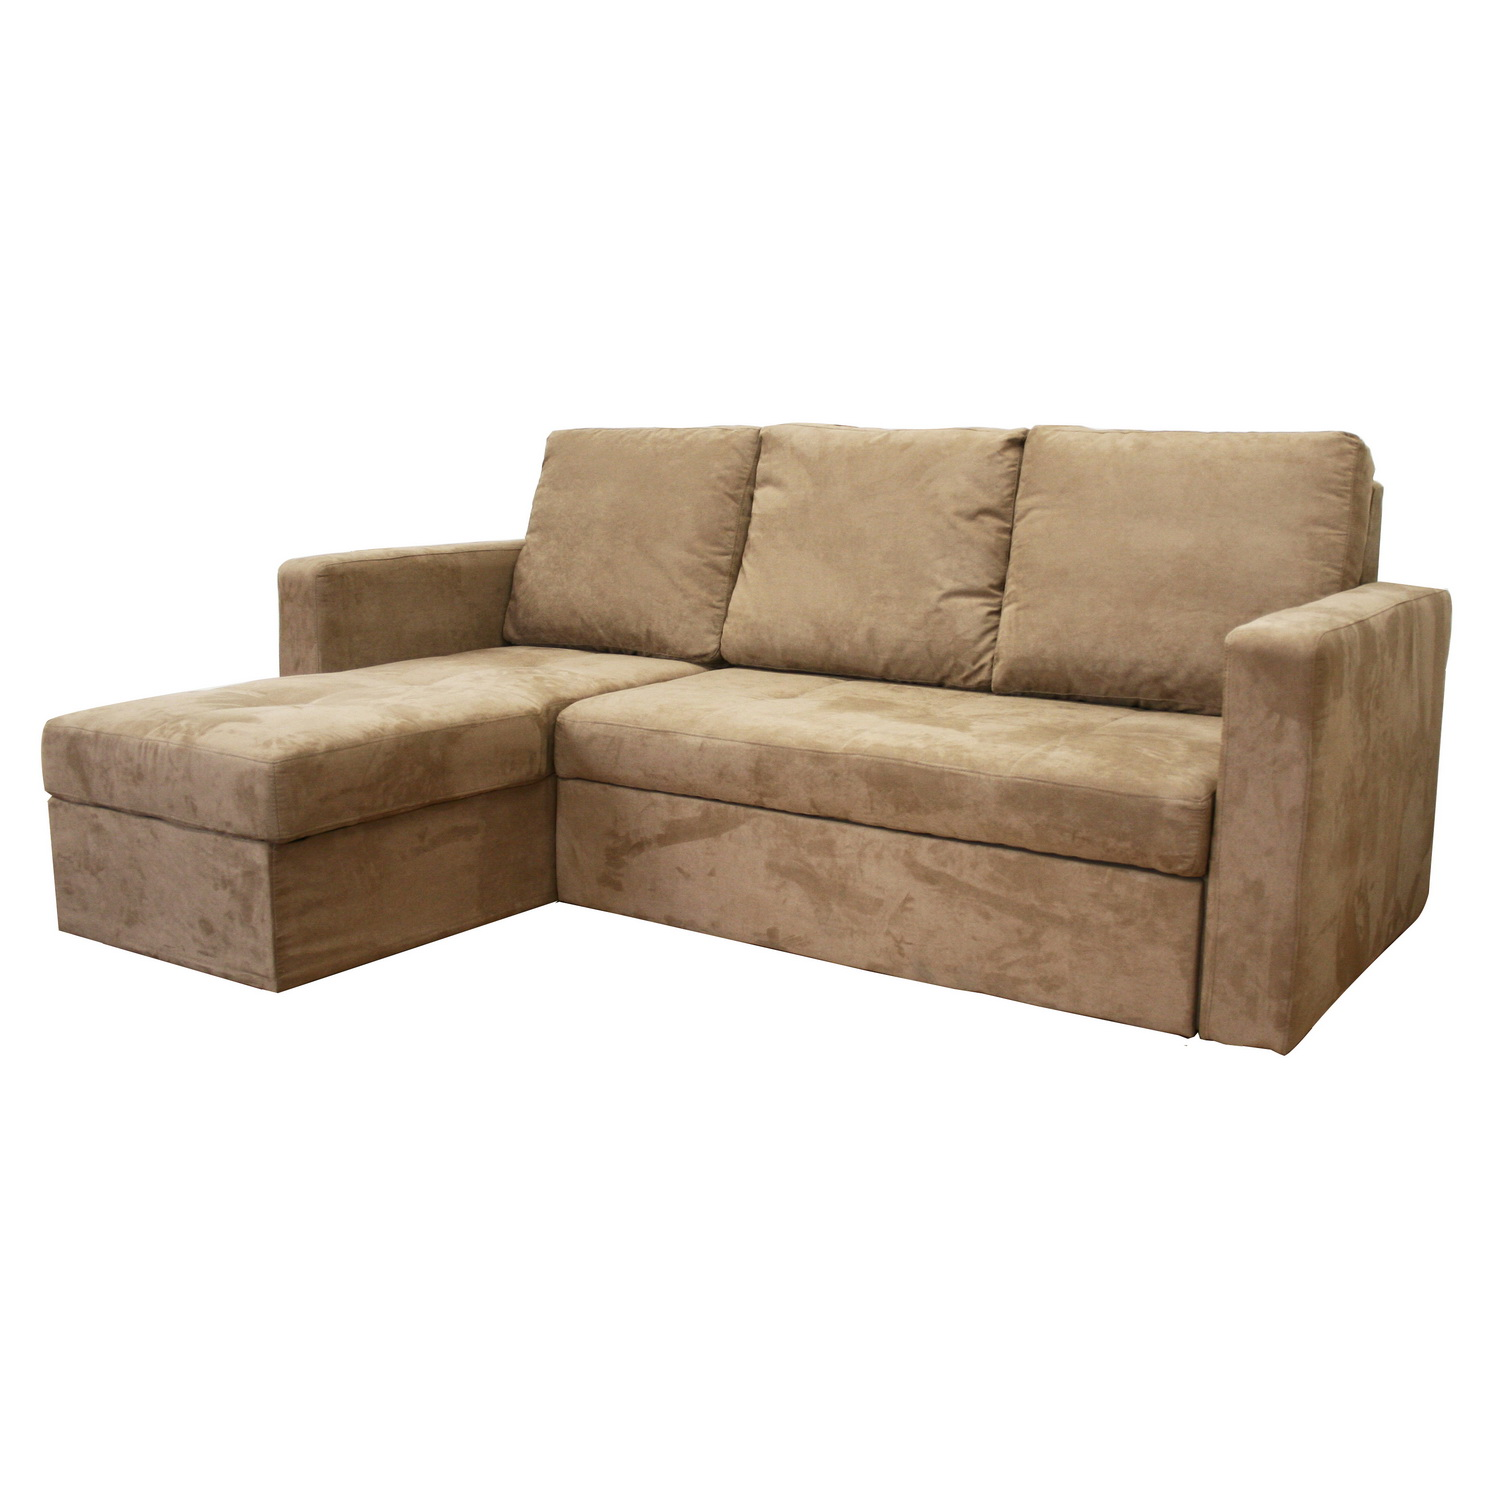 Sofas loveseats for Sectional sleeper sofa